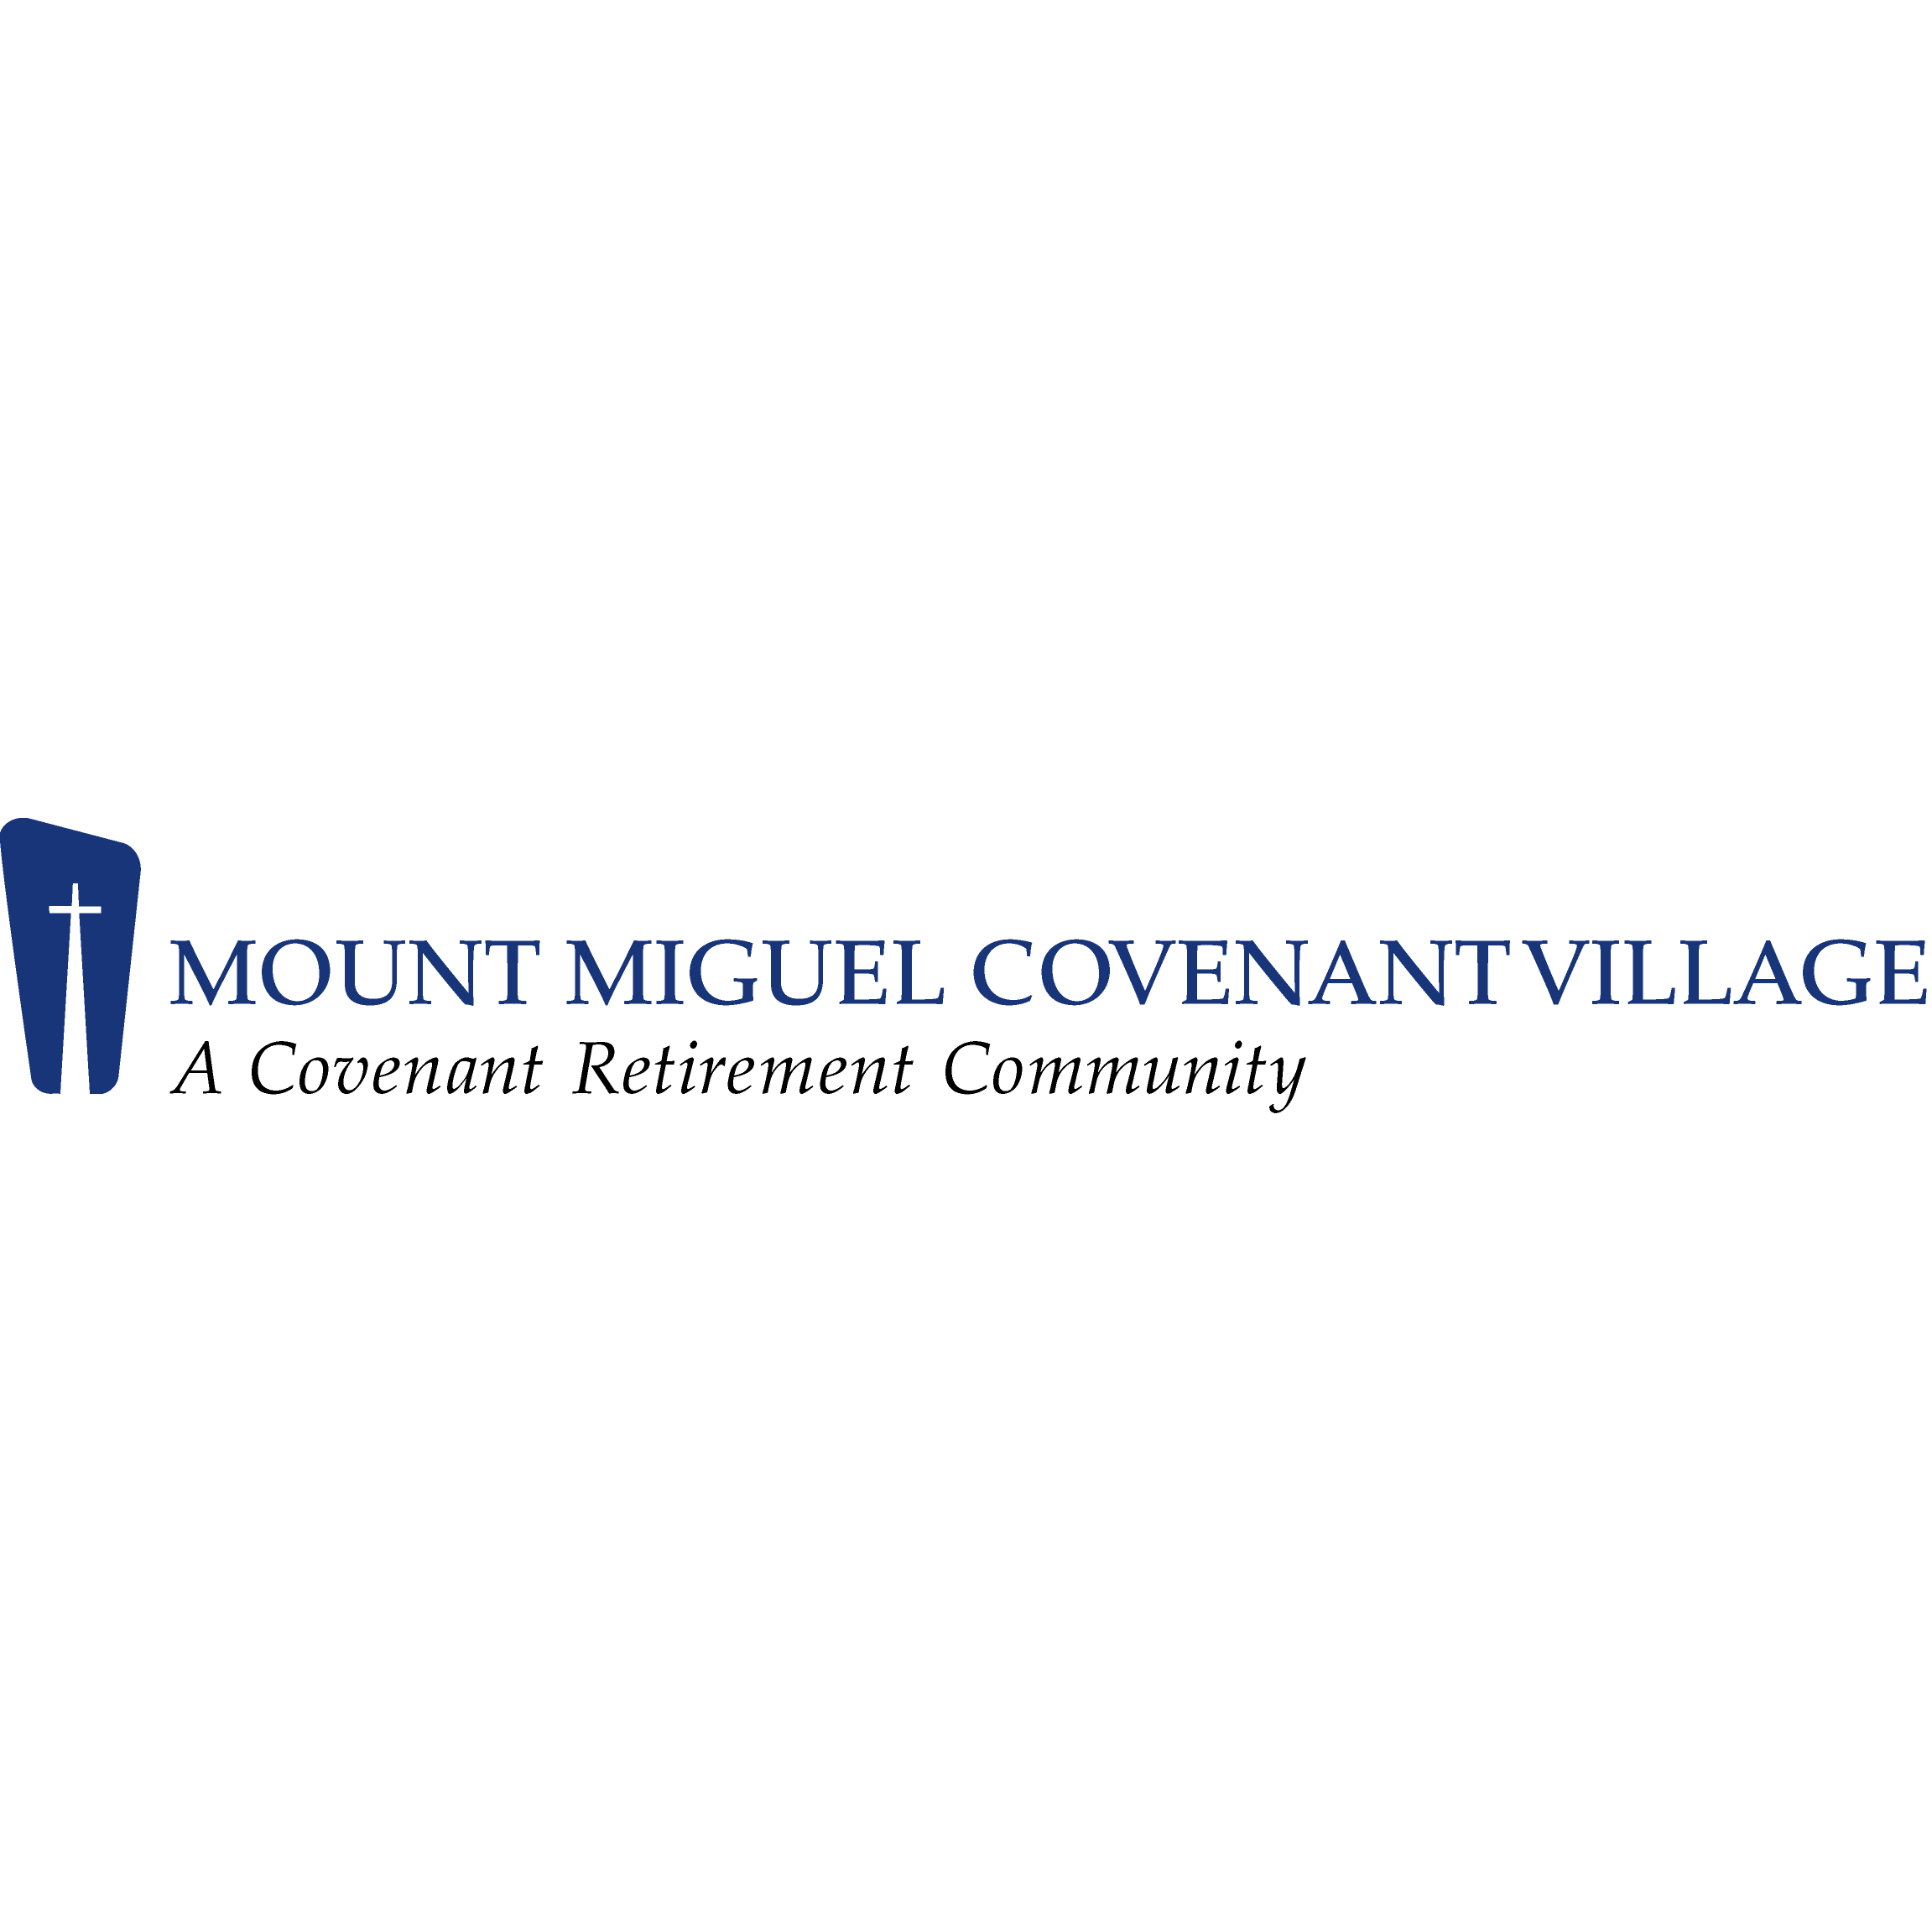 Copy of Mount Miguel Covenant Village